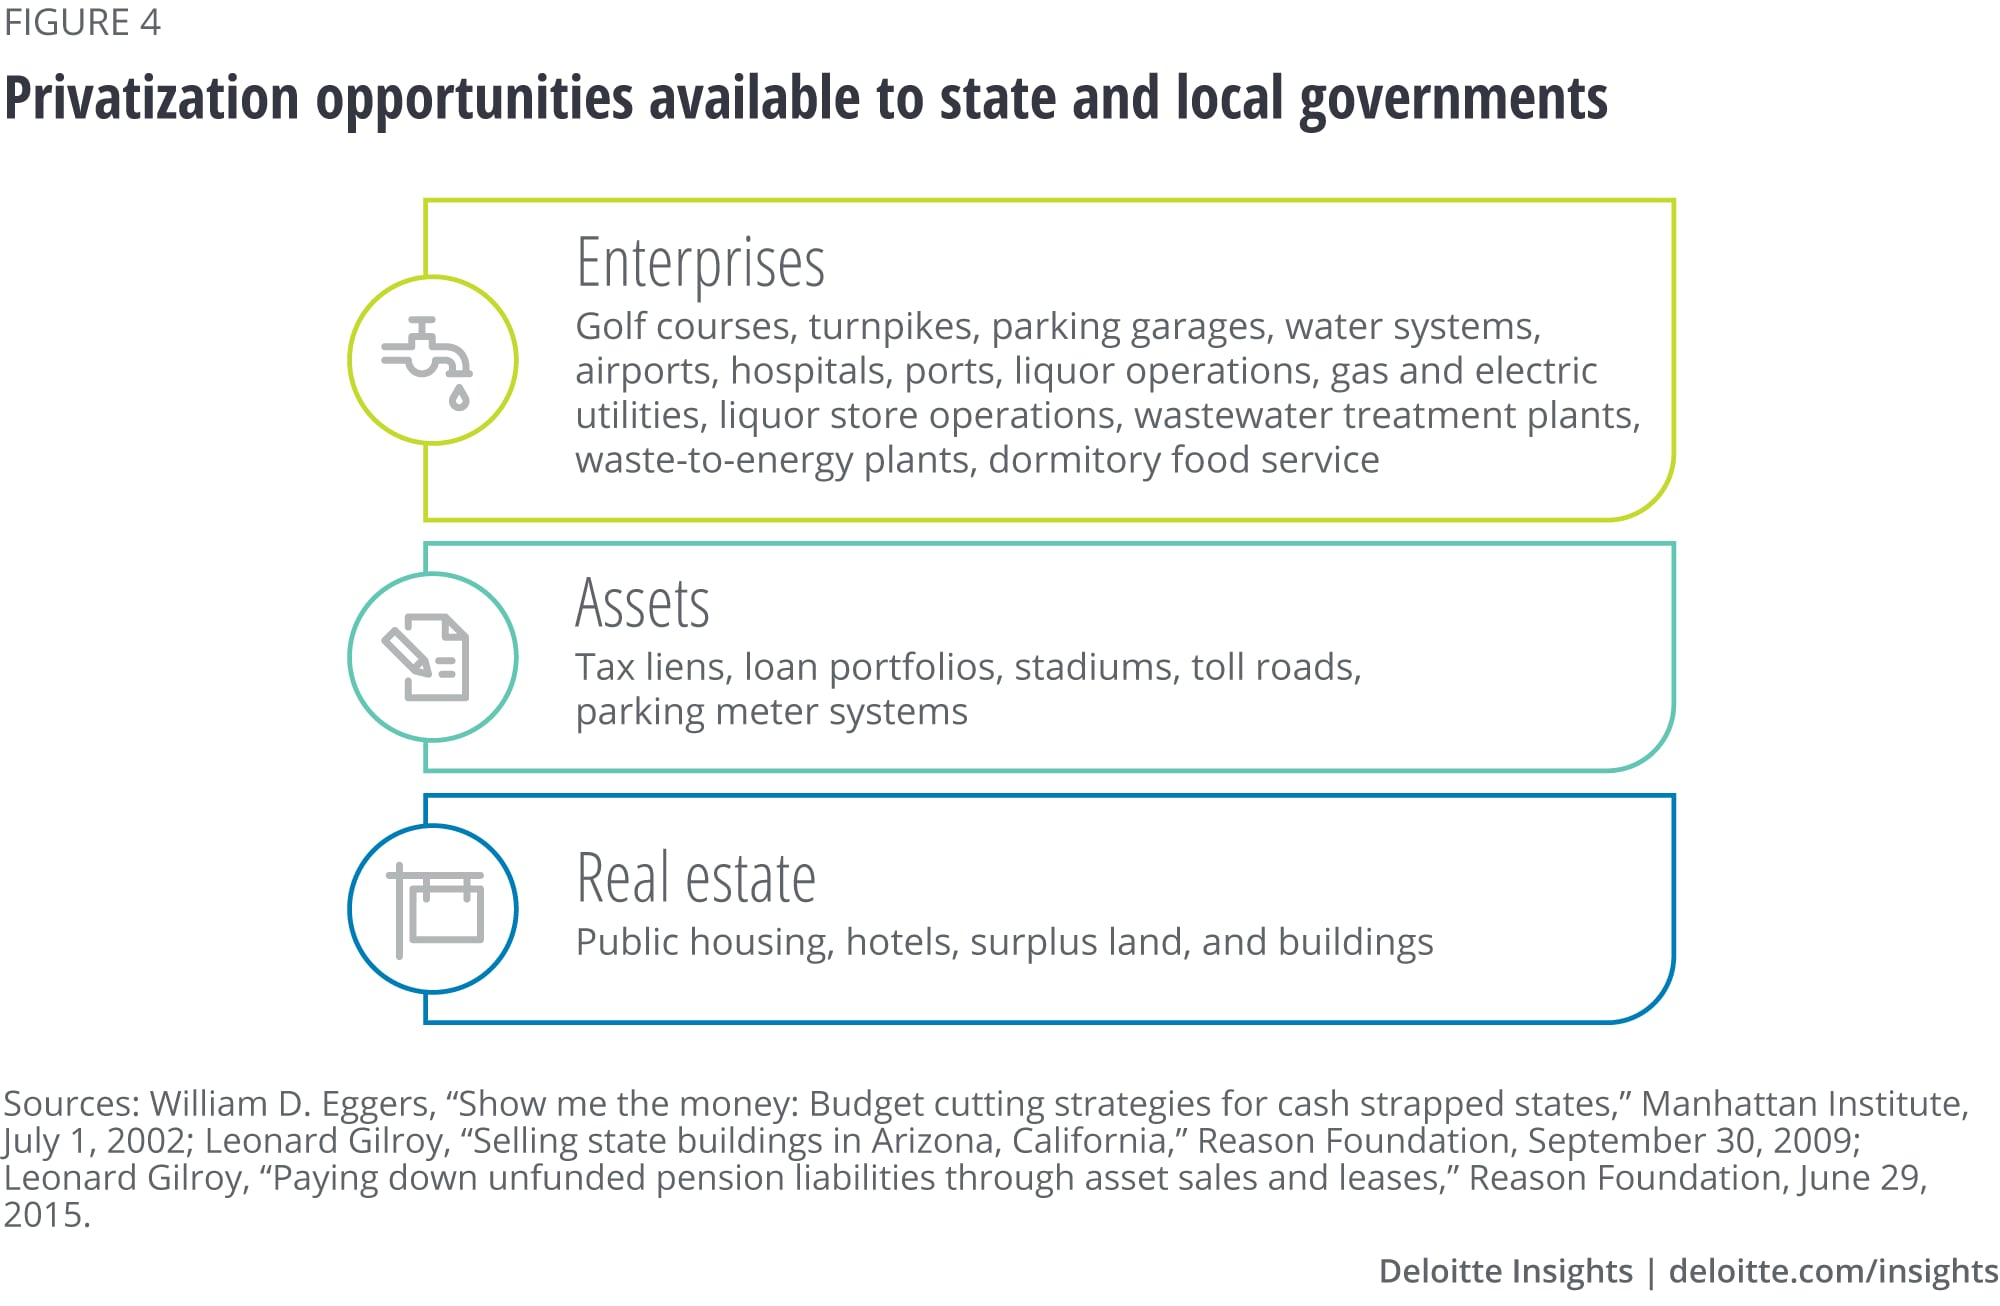 Privatization opportunities available to state and local governments